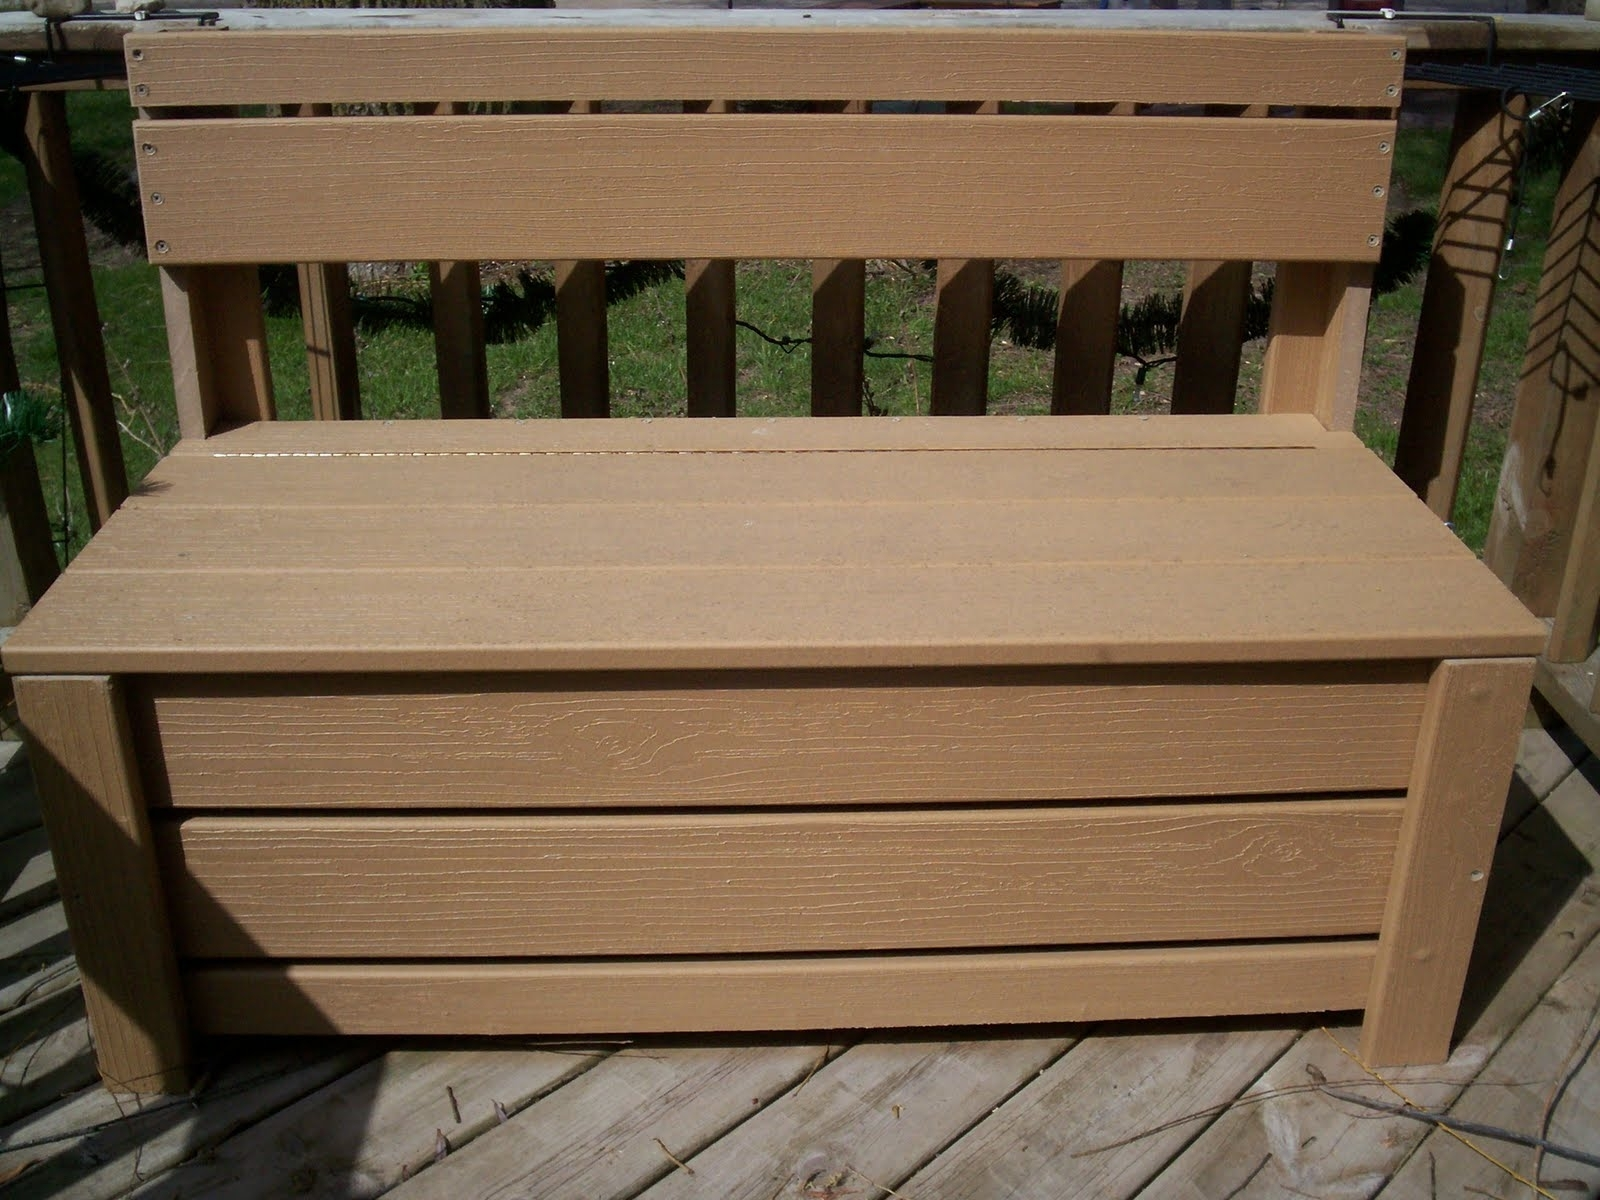 Image of: Simple Storage Bench Plans Corner Storage Bench Plans Ideas For Outdoor Cushion Storage Bench Classic Outdoor Cushion Storage Bench